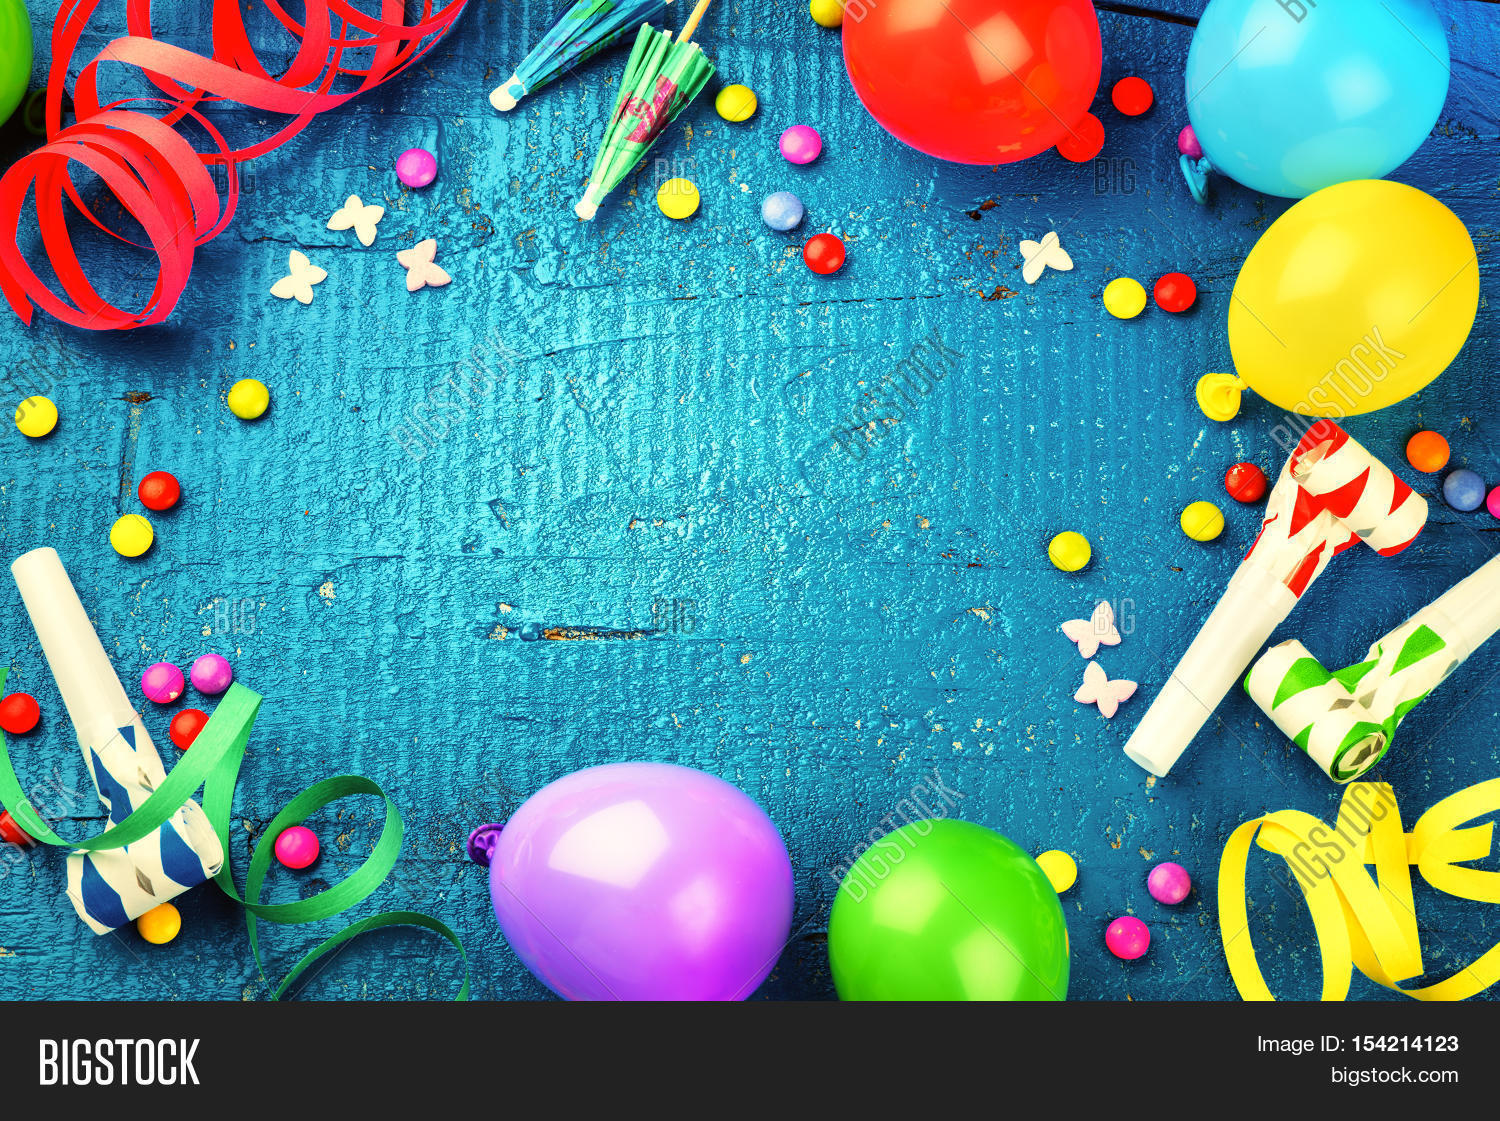 colorful birthday images ; 154214123